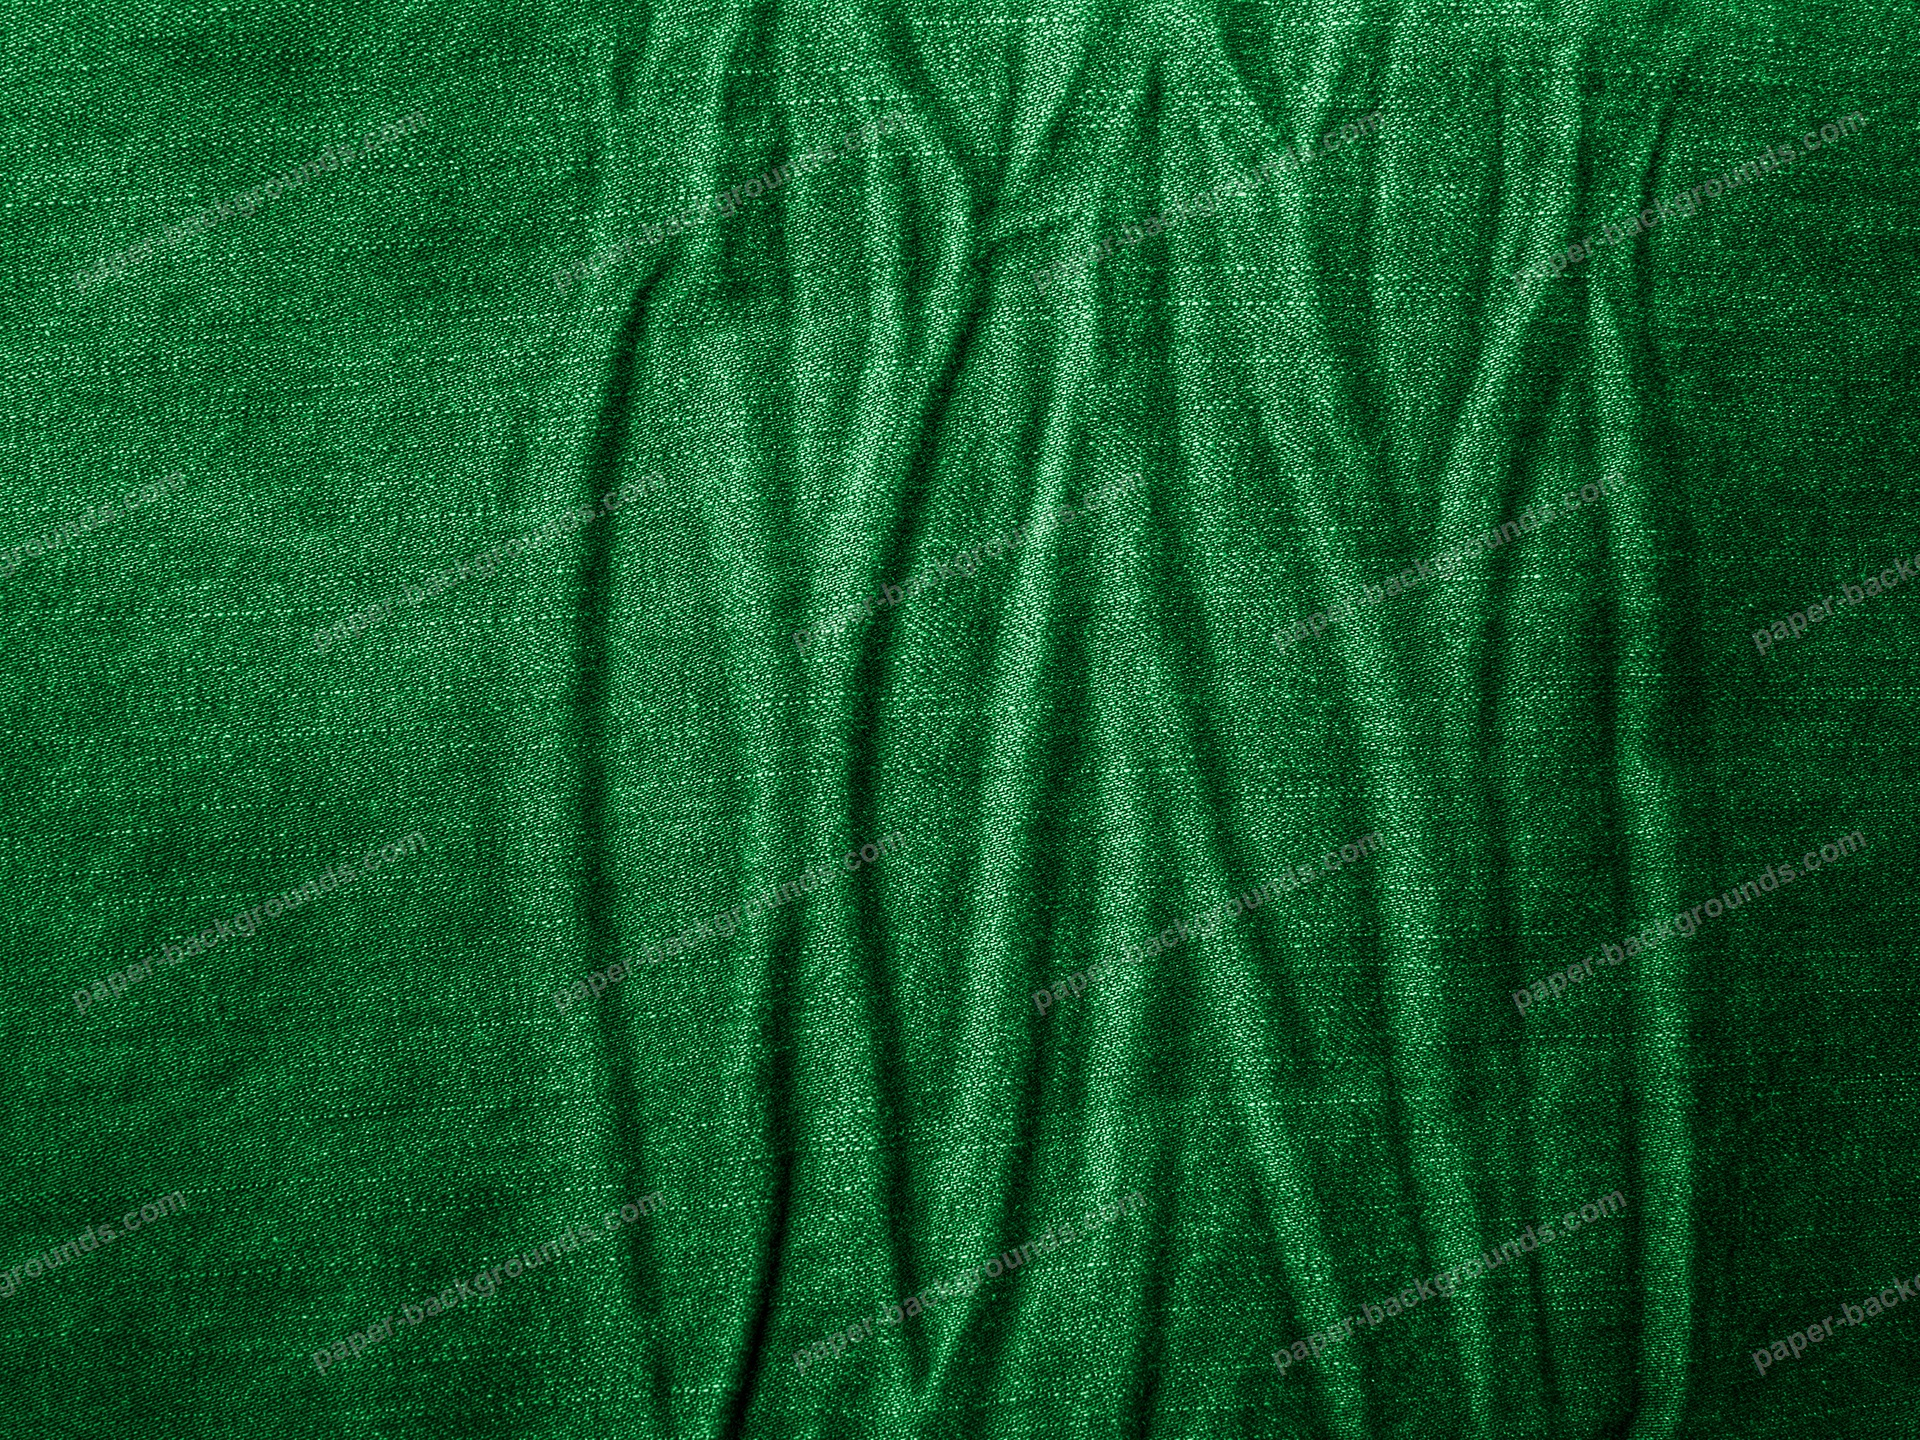 Wrinkled Green Jeans Texture HD 1920 x 1080p